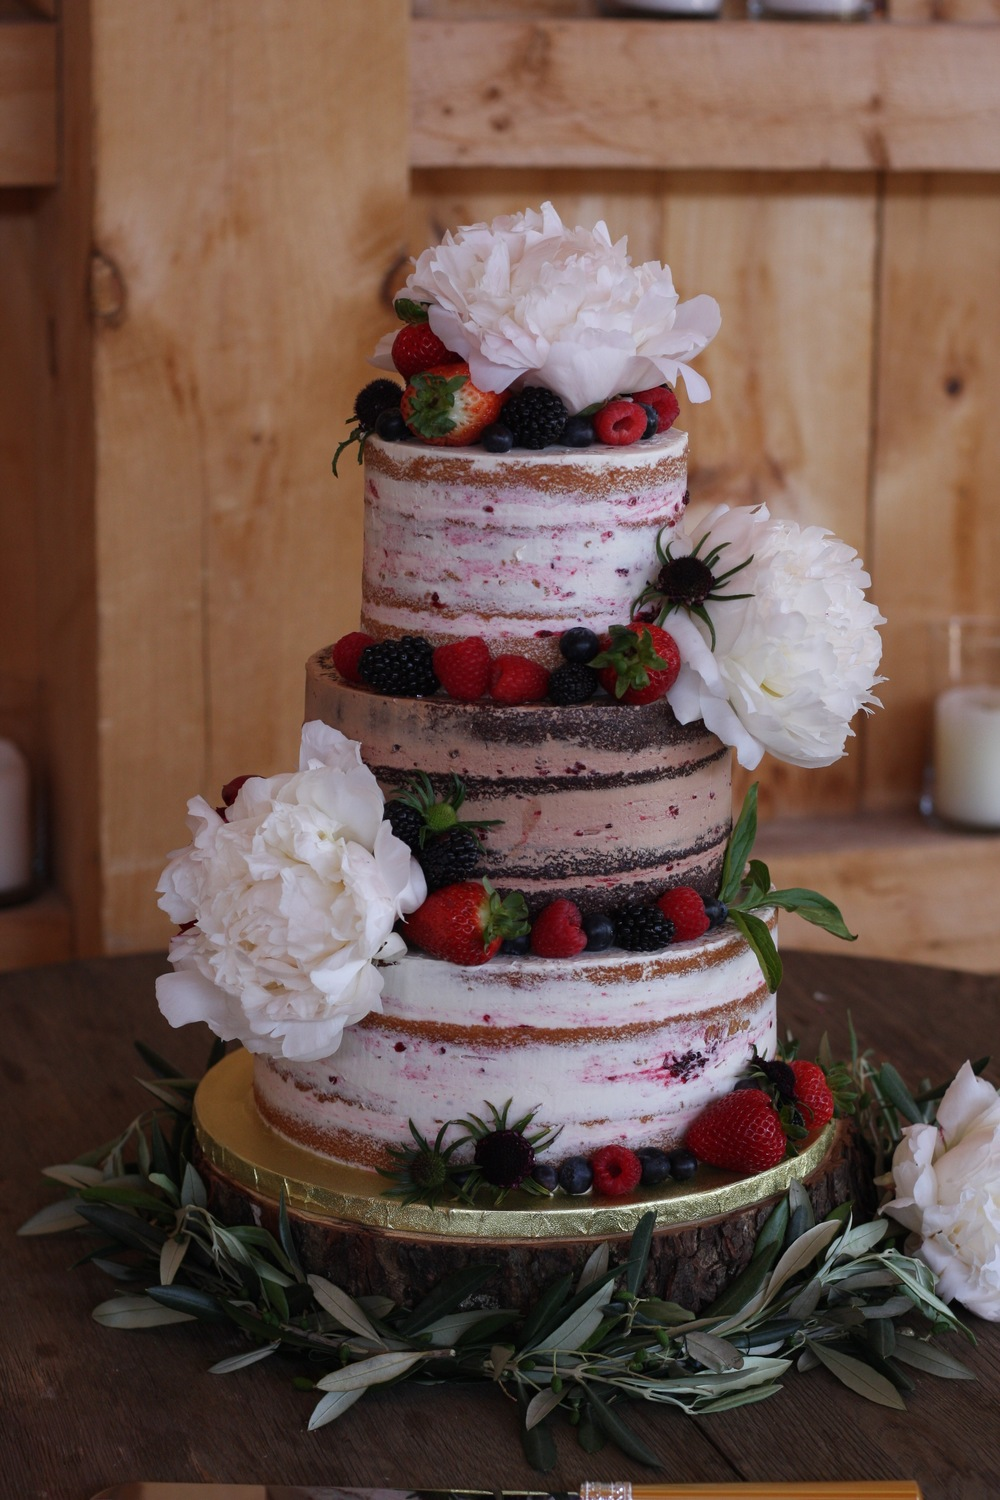 Tiered Naked Cake with Fresh Fruit